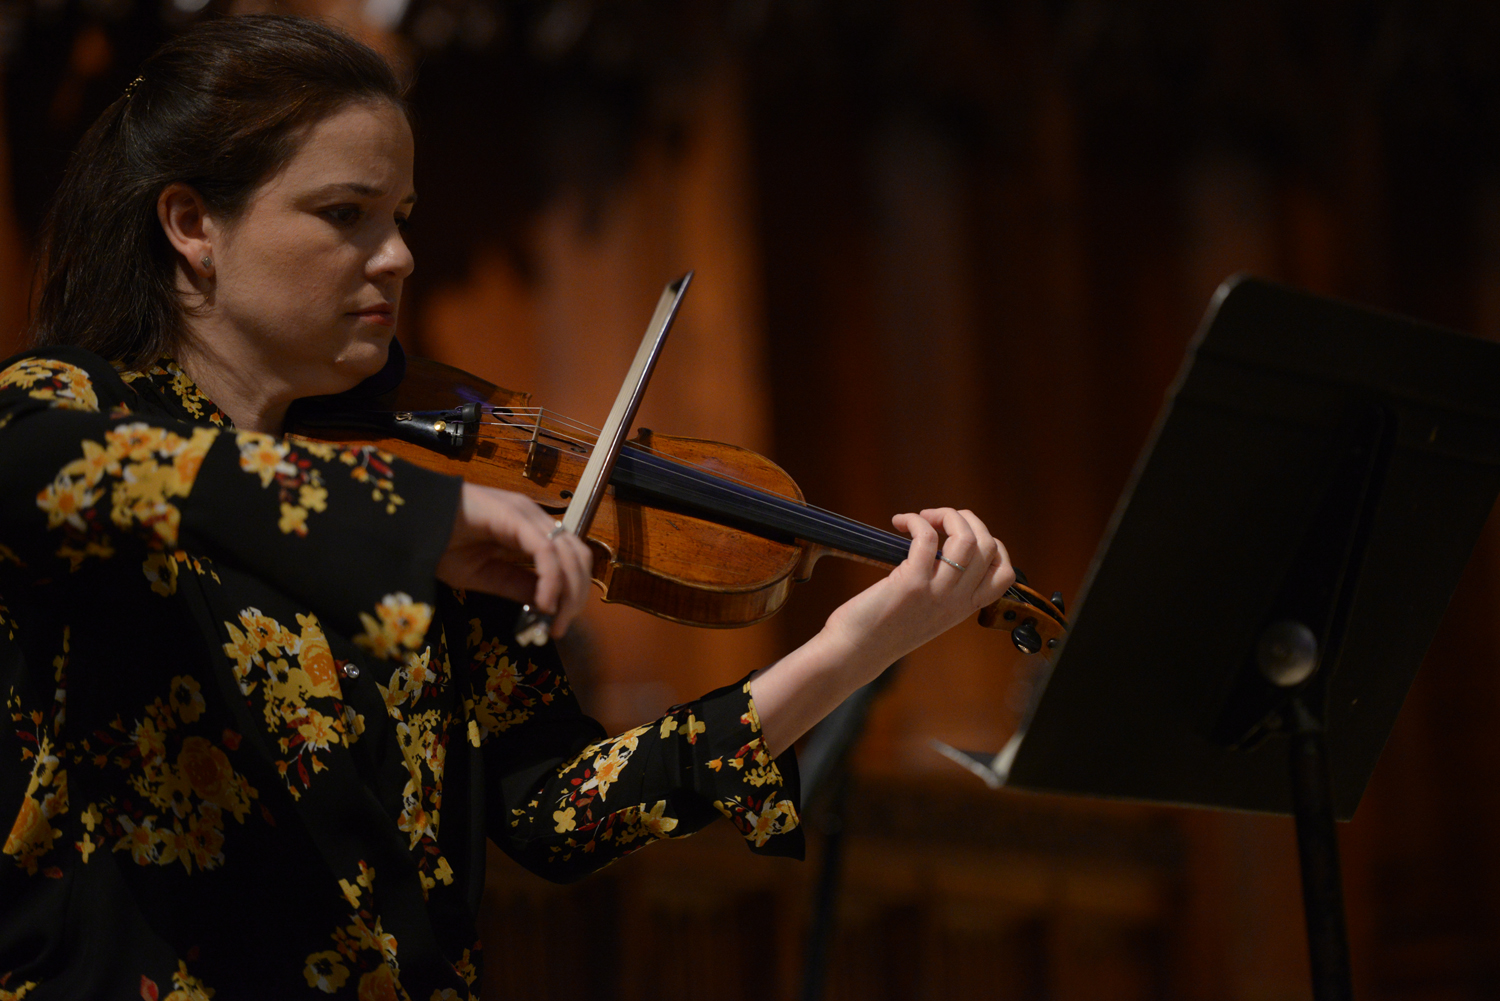 Lydia Miller plays the violin in Heinz Chapel as one-third of the Miller-Kufchak-DeBruyn Trio.